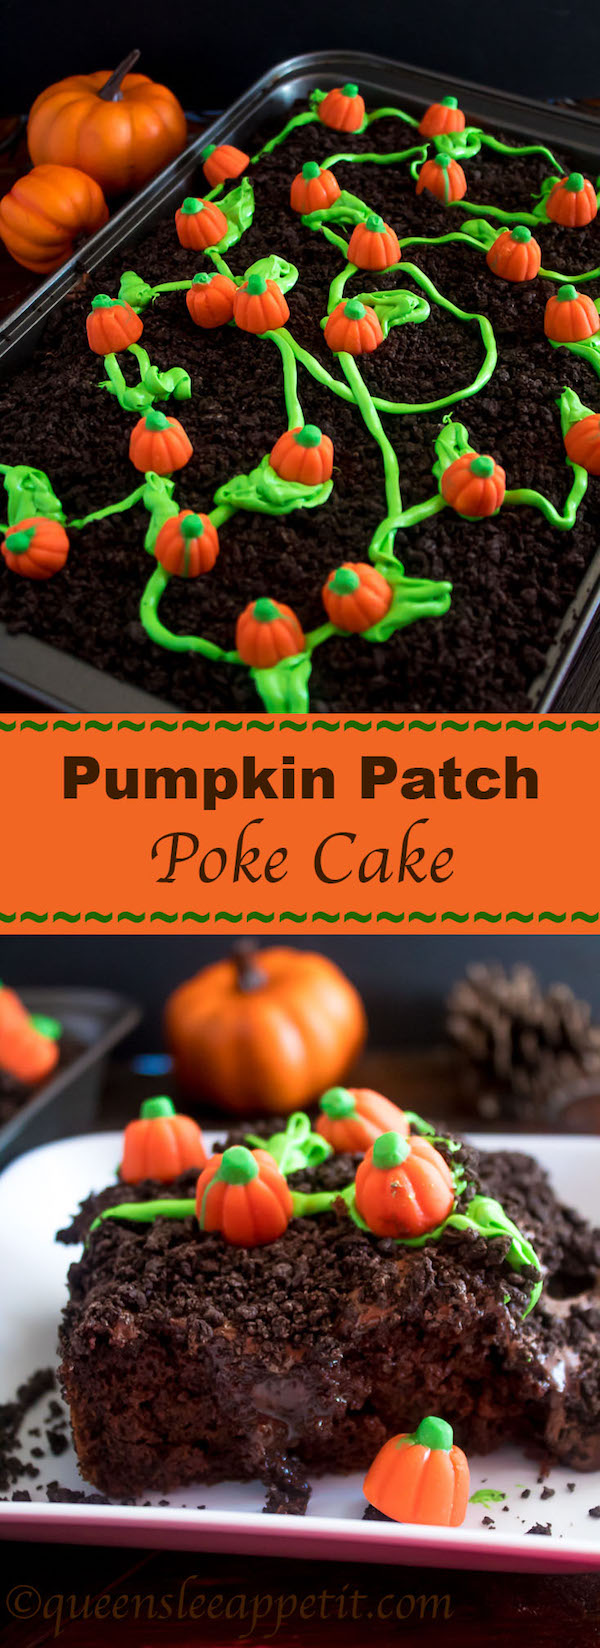 This Pumpkin Patch Poke Cake is super fun, easy and festive! This cute dessert would be a great treat to serve after Thanksgiving dinner!